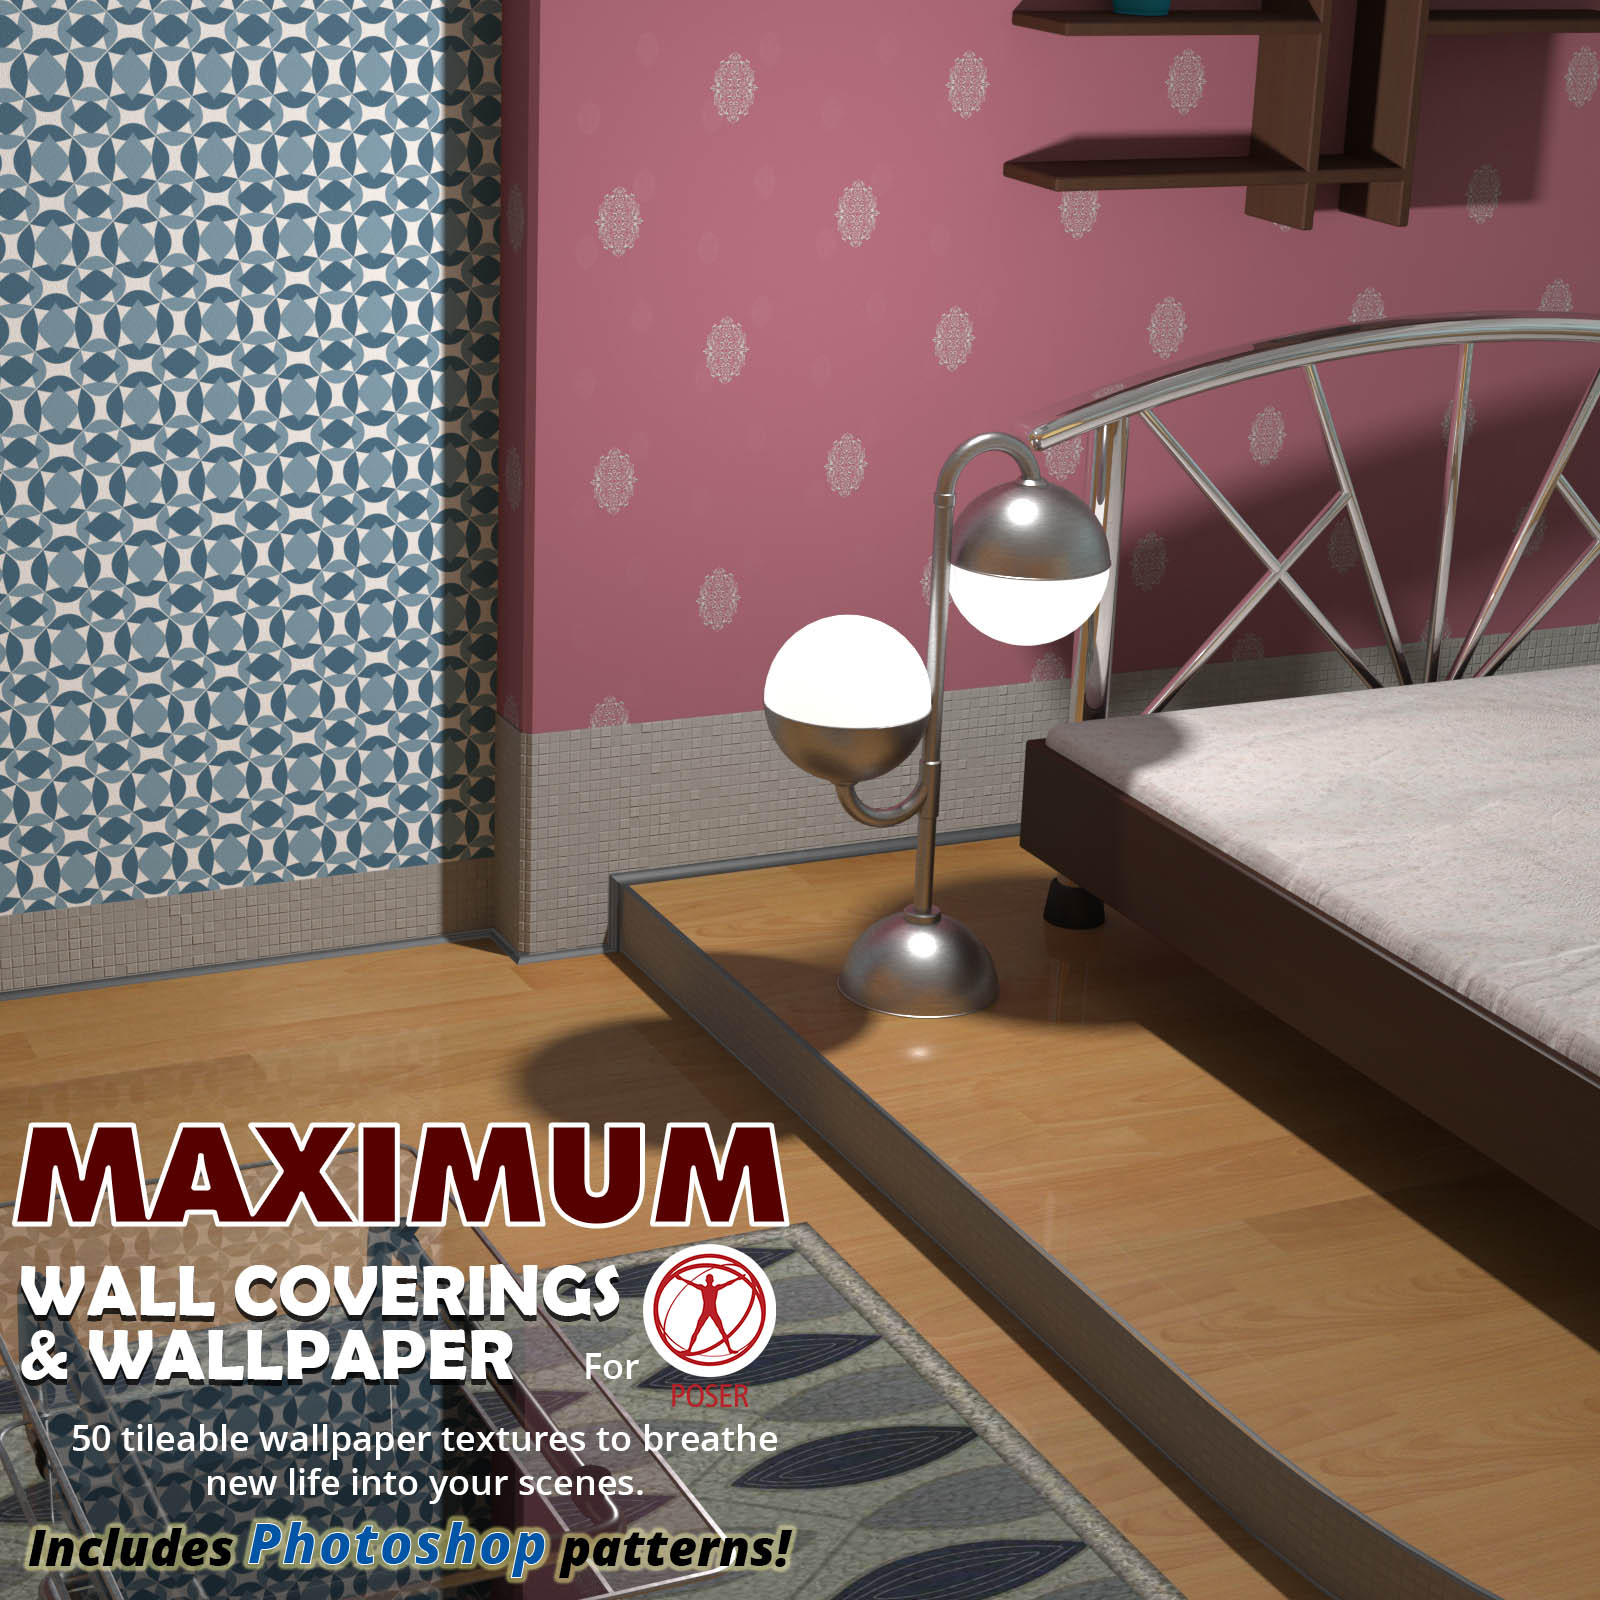 Maximum wall coverings and wallpaper for Poser